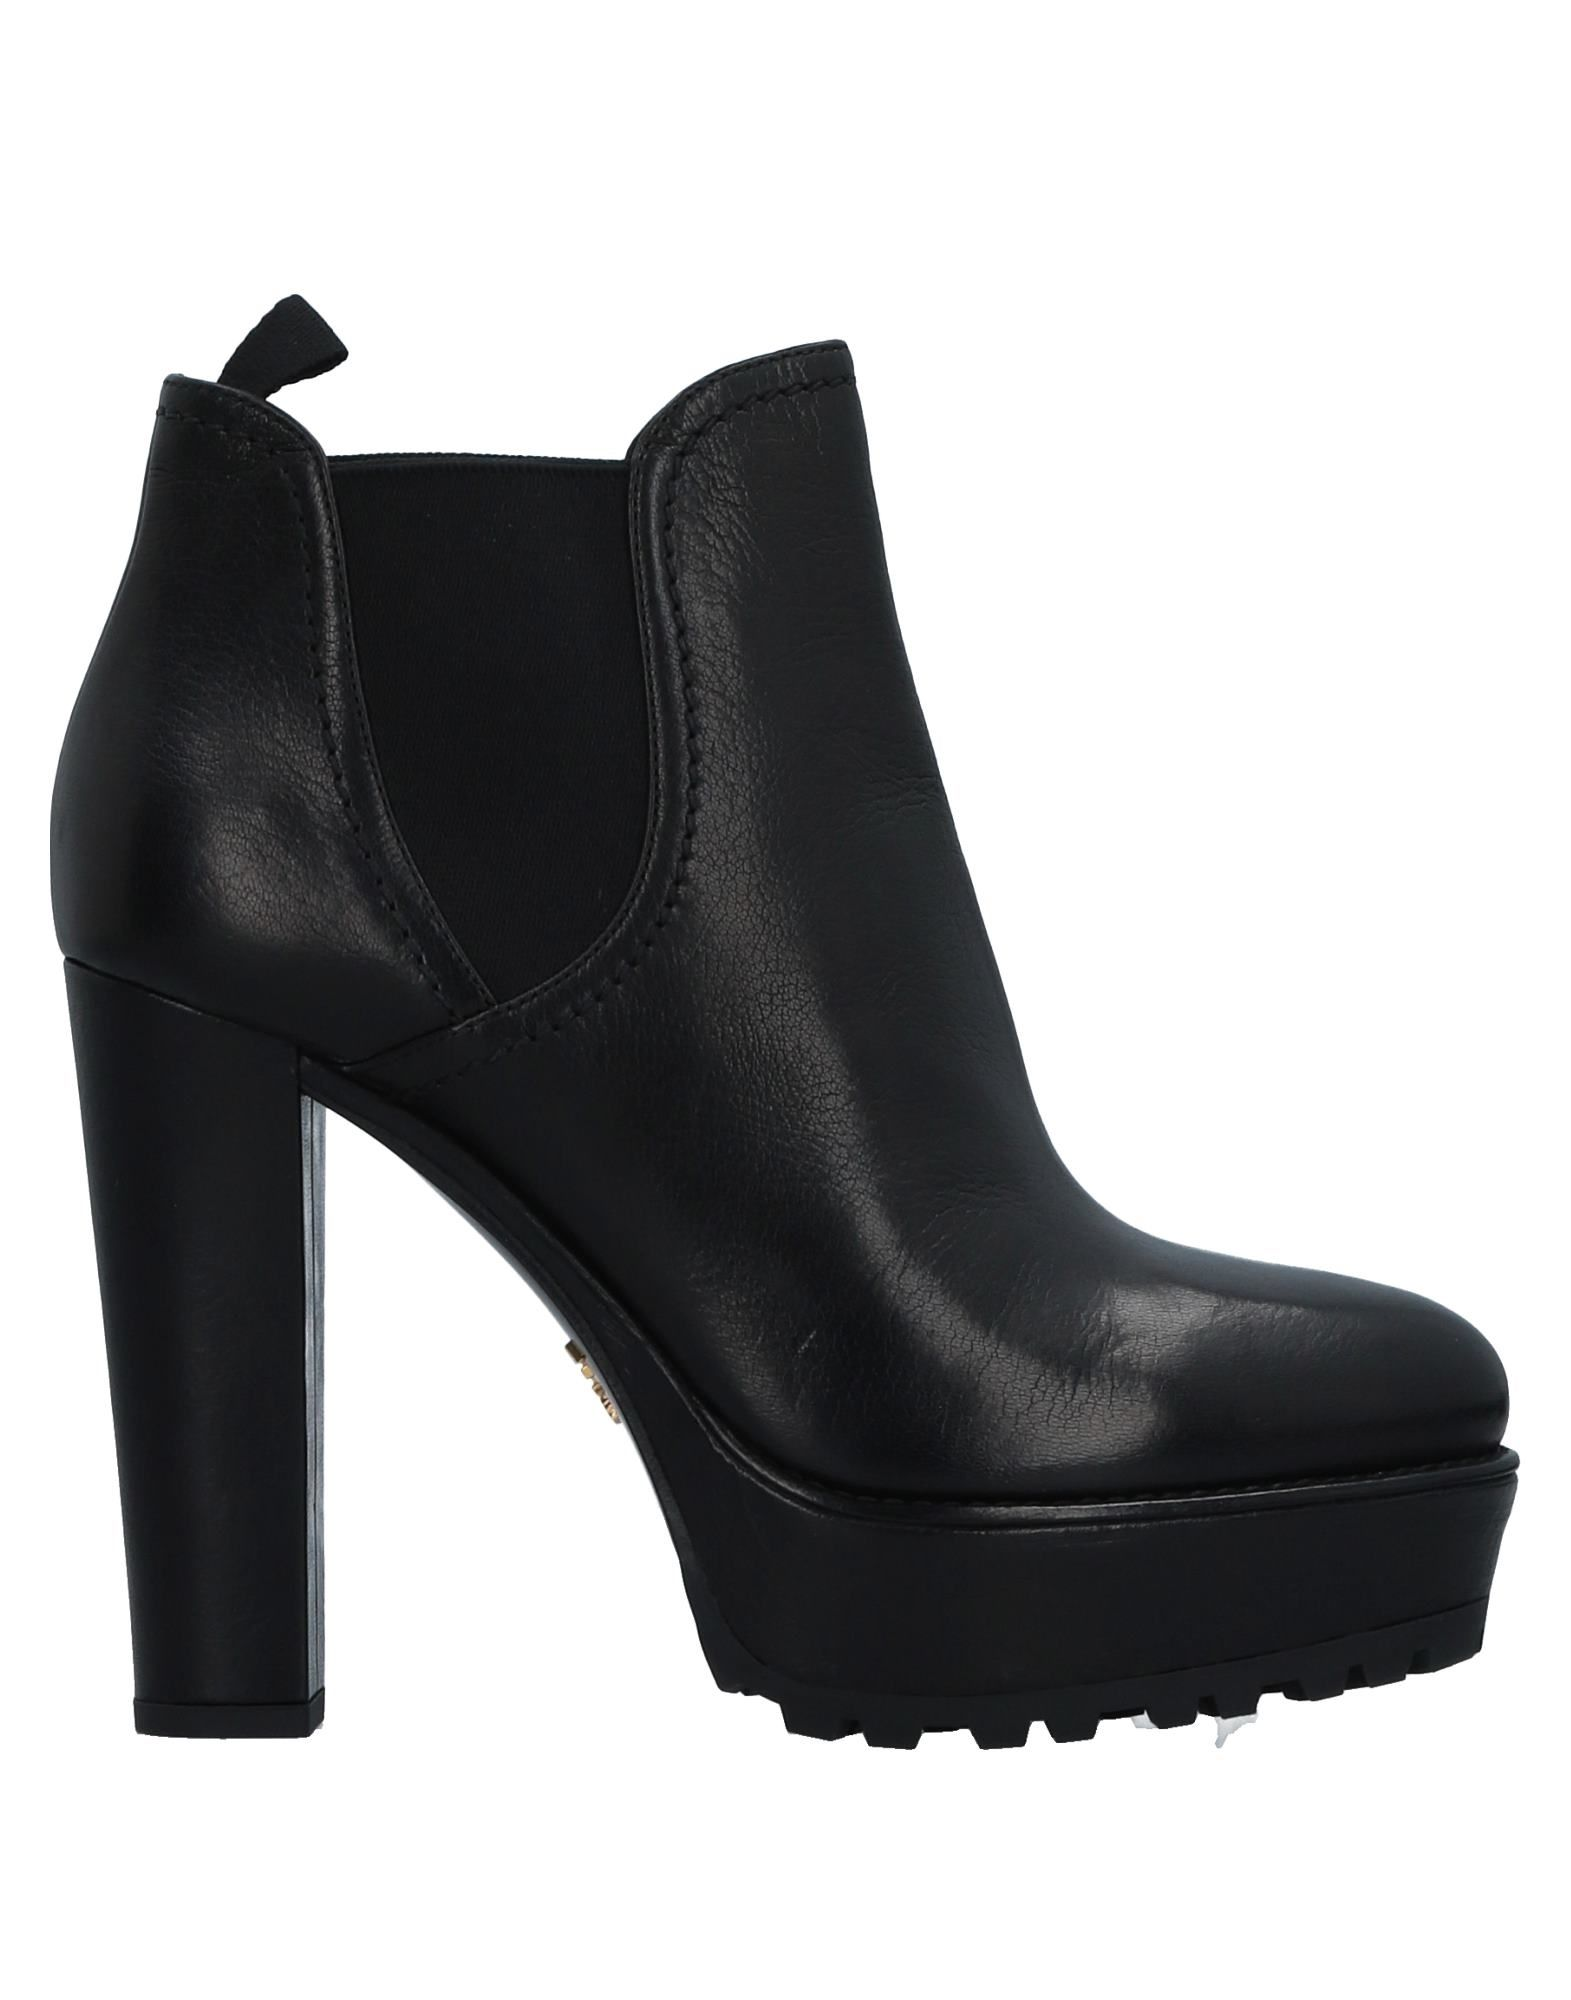 Prada Ankle Boot - Women Prada Ankle United Boots online on  United Ankle Kingdom - 11524199AA 167d60